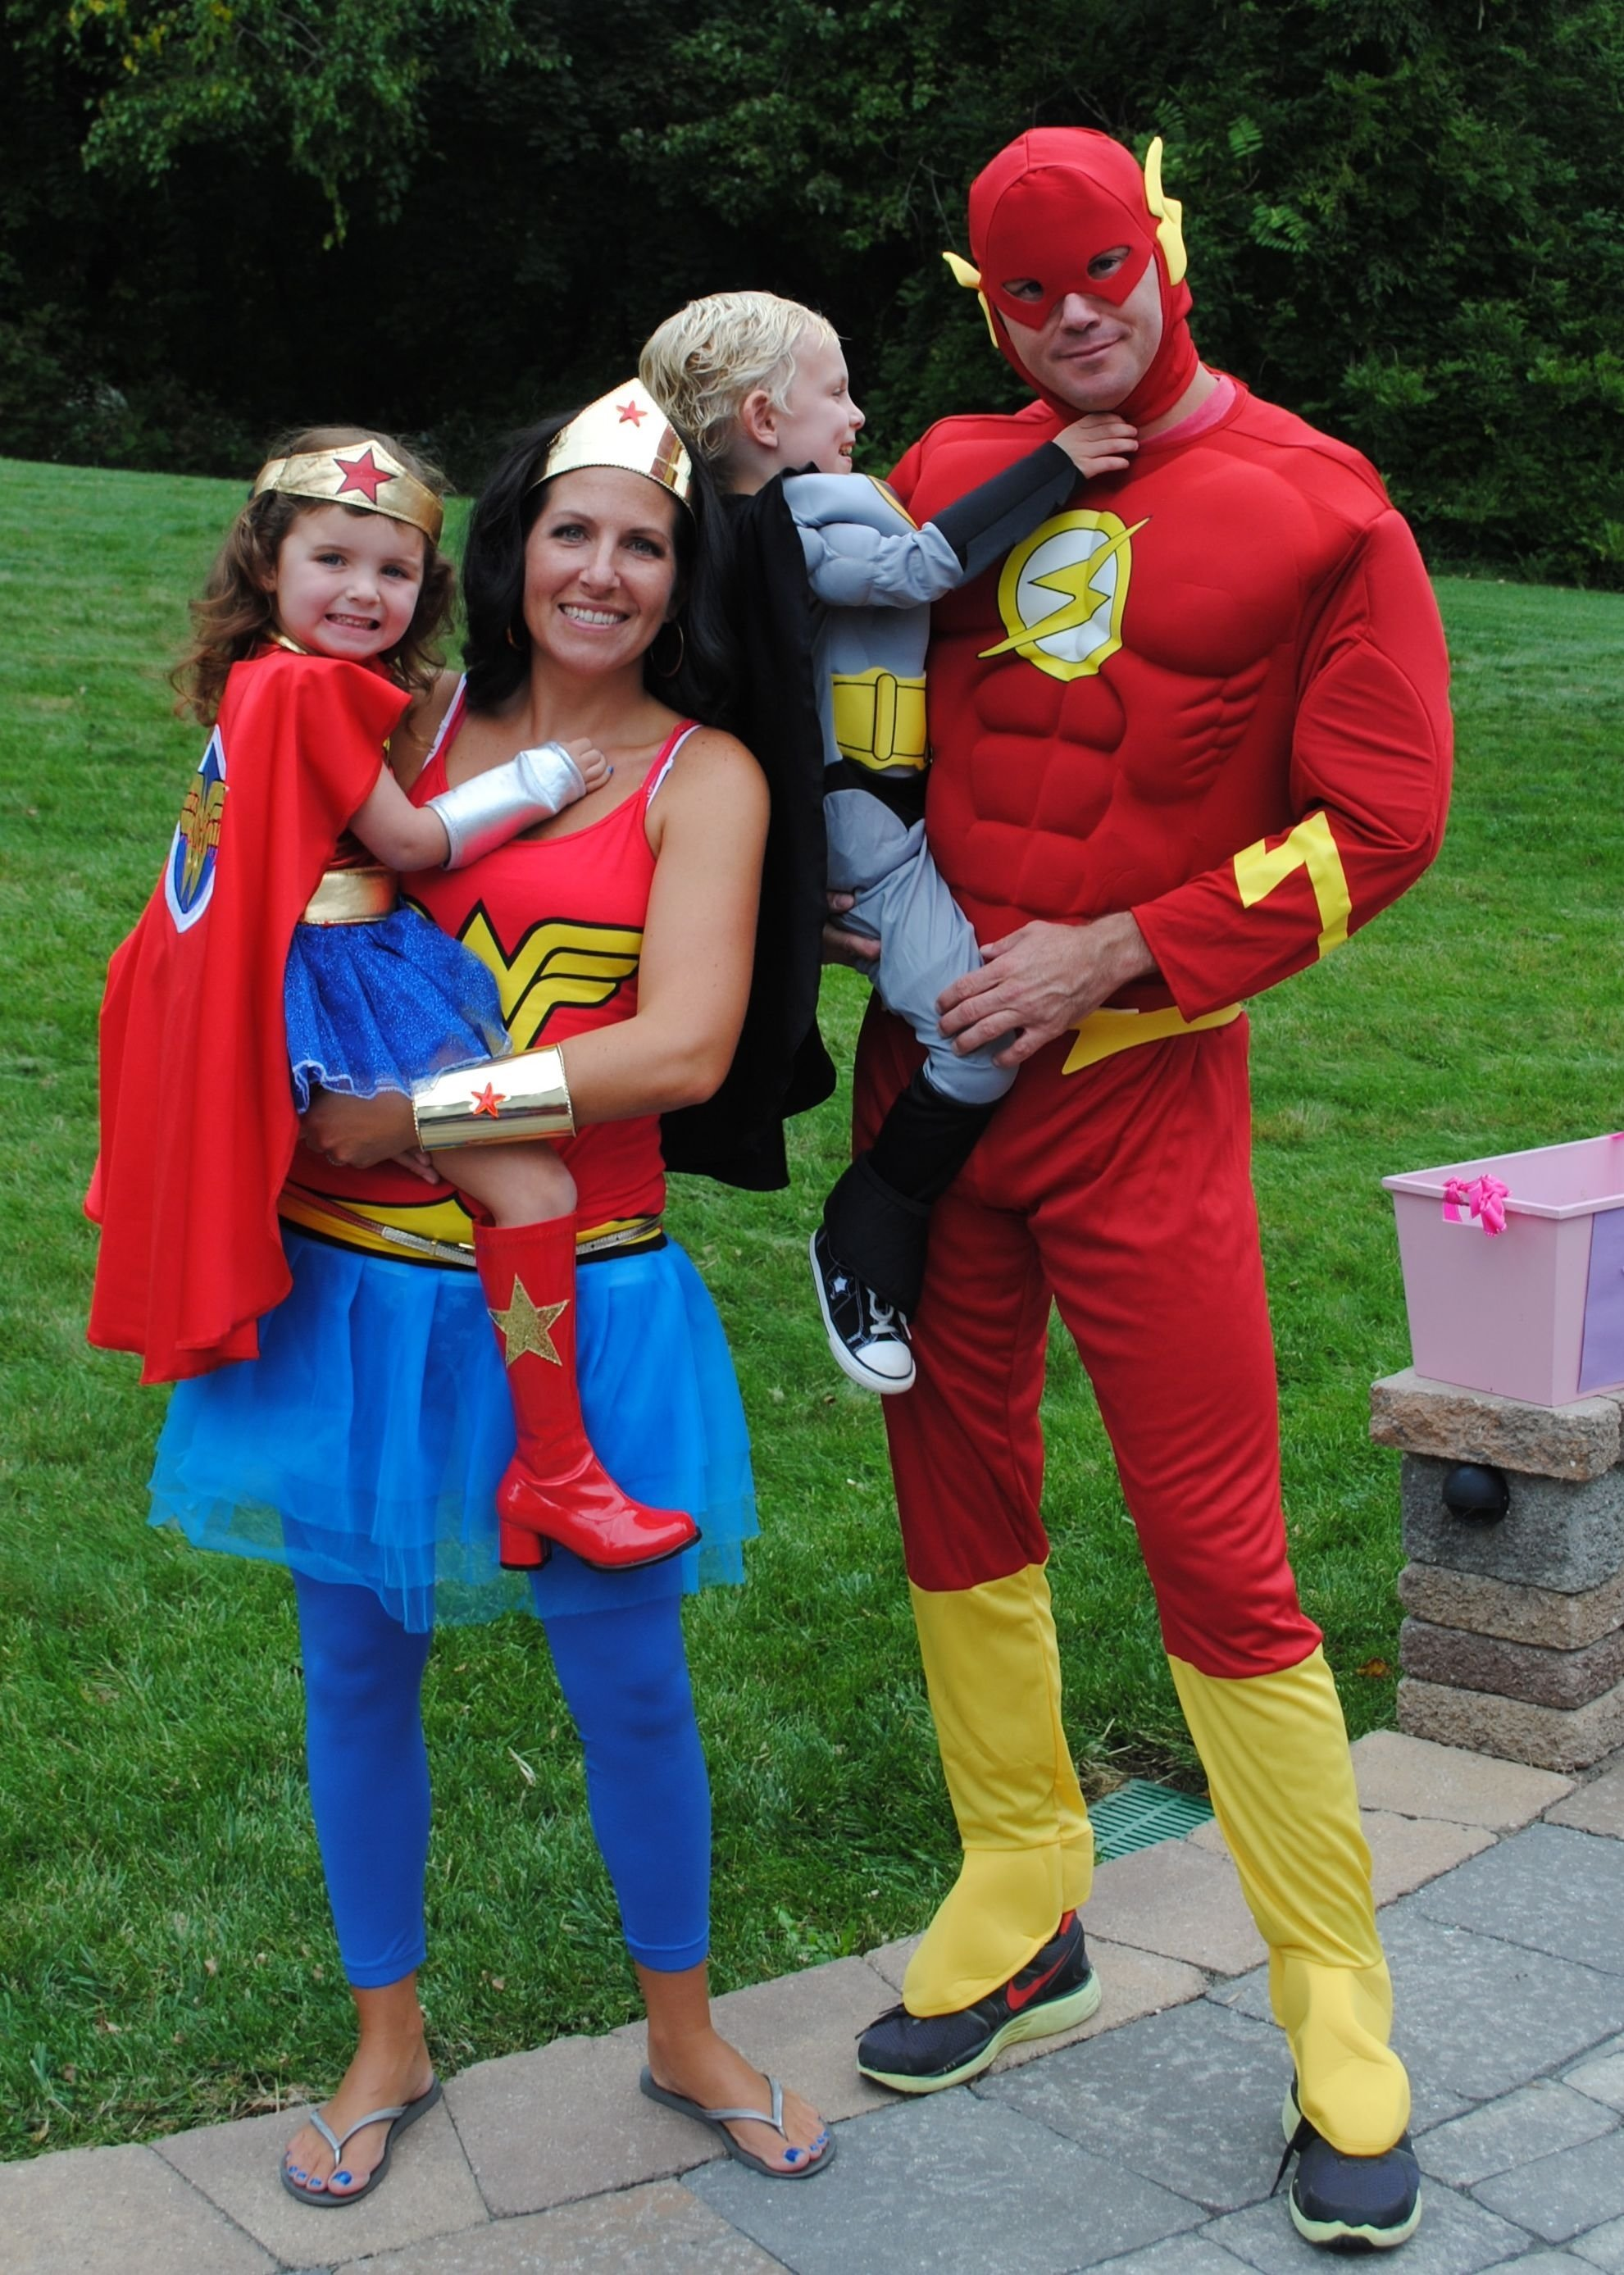 10 Fashionable Made Up Superhero Costume Ideas superhero costumes the family that saves together stays together 3 2020